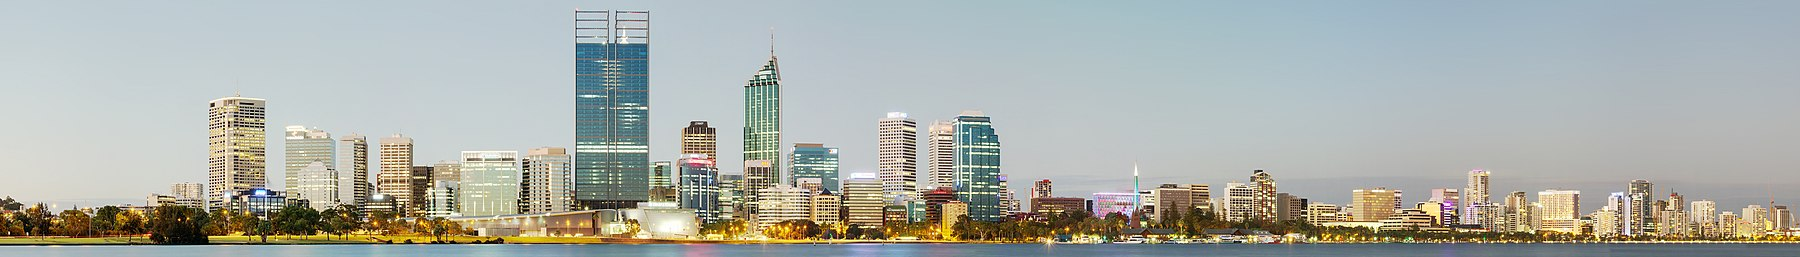 Perth CBD from Mill Point banner.jpg